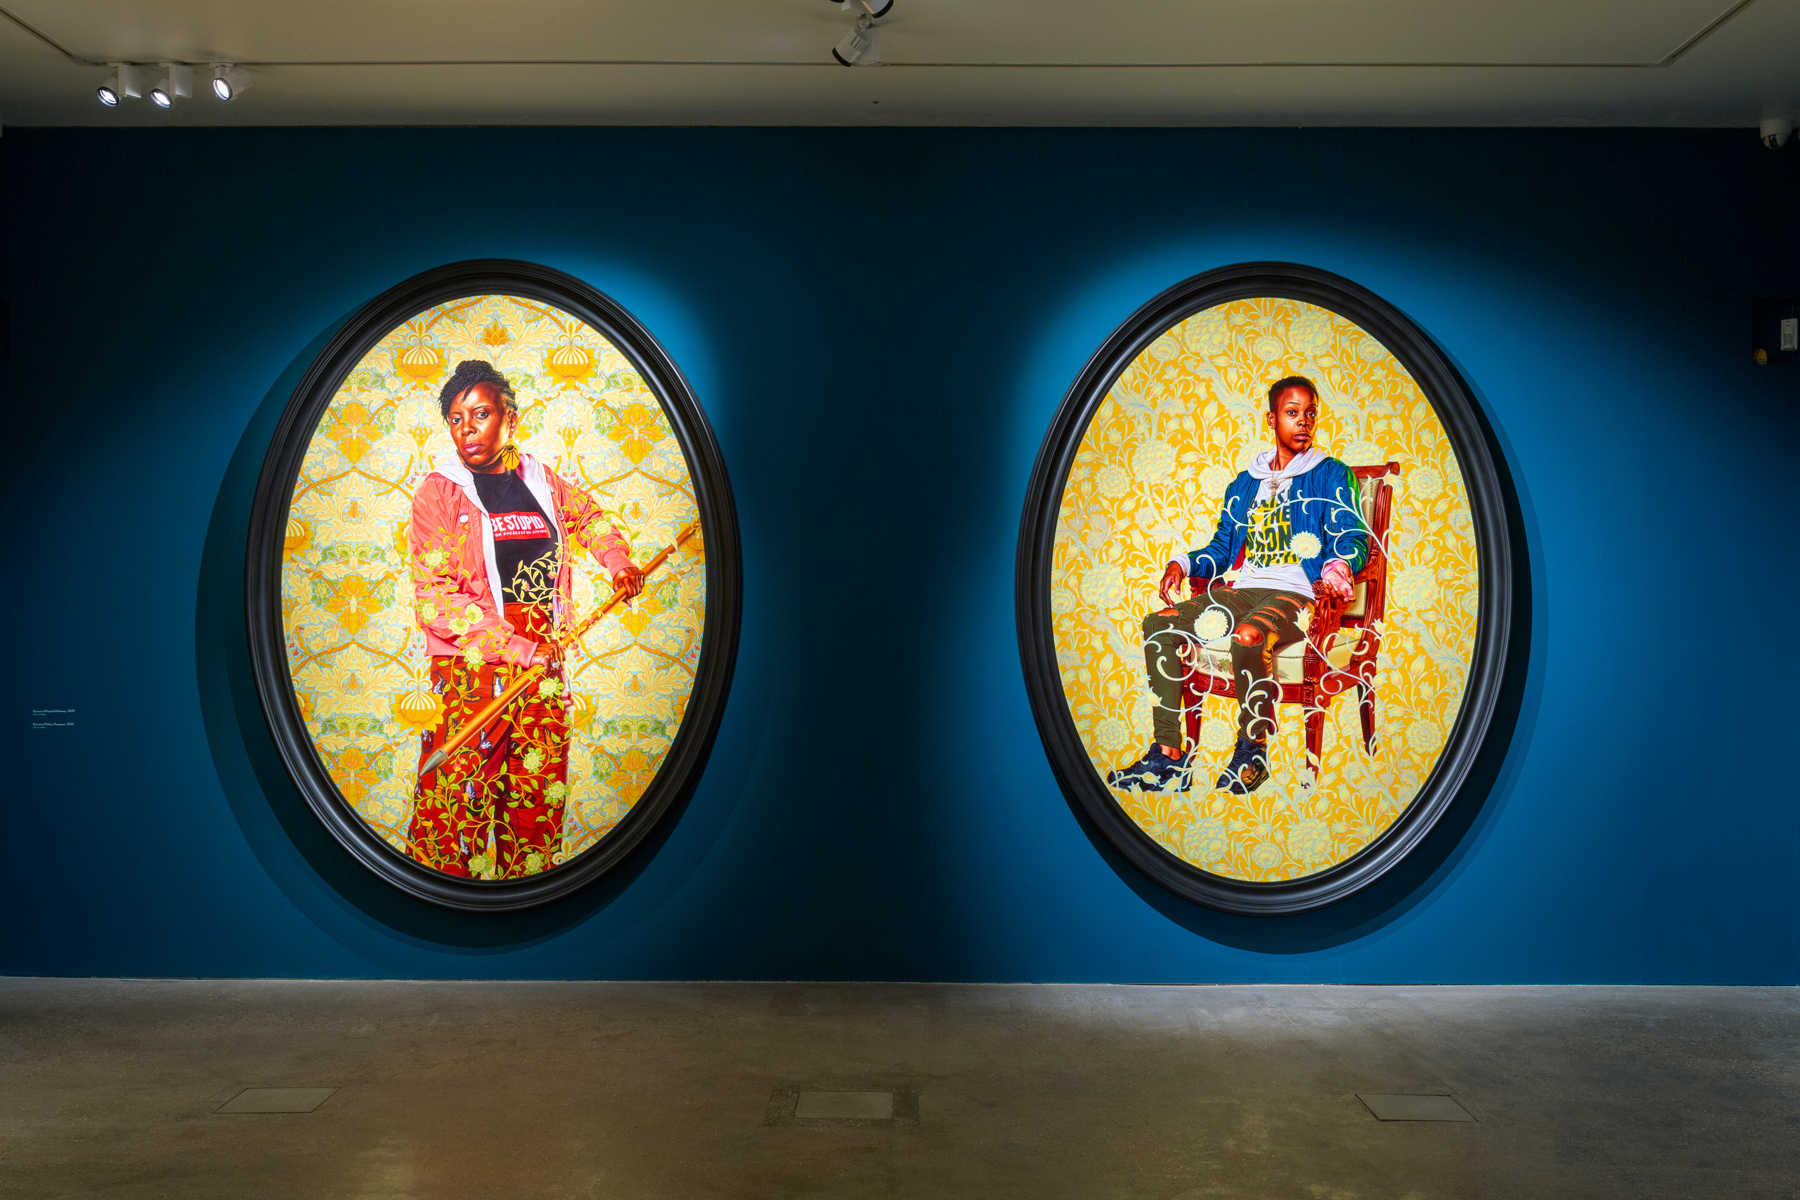 Kehinde Wiley's new portraits arrive at William Morris Gallery